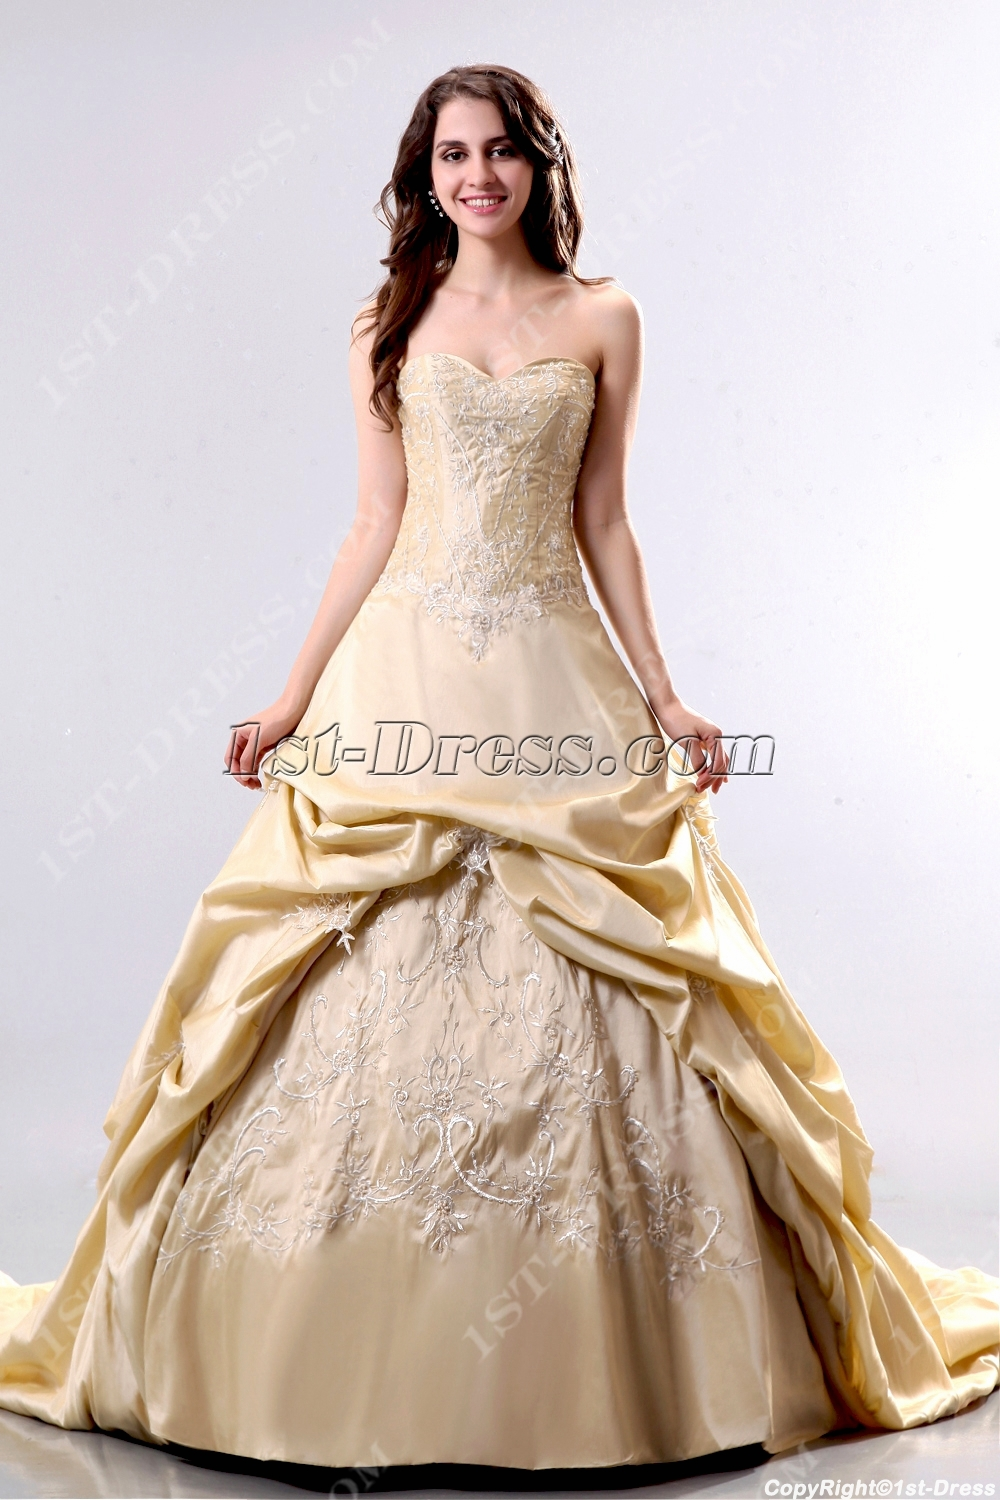 elegant champagne 2013 bridal gowns with corset1stdresscom